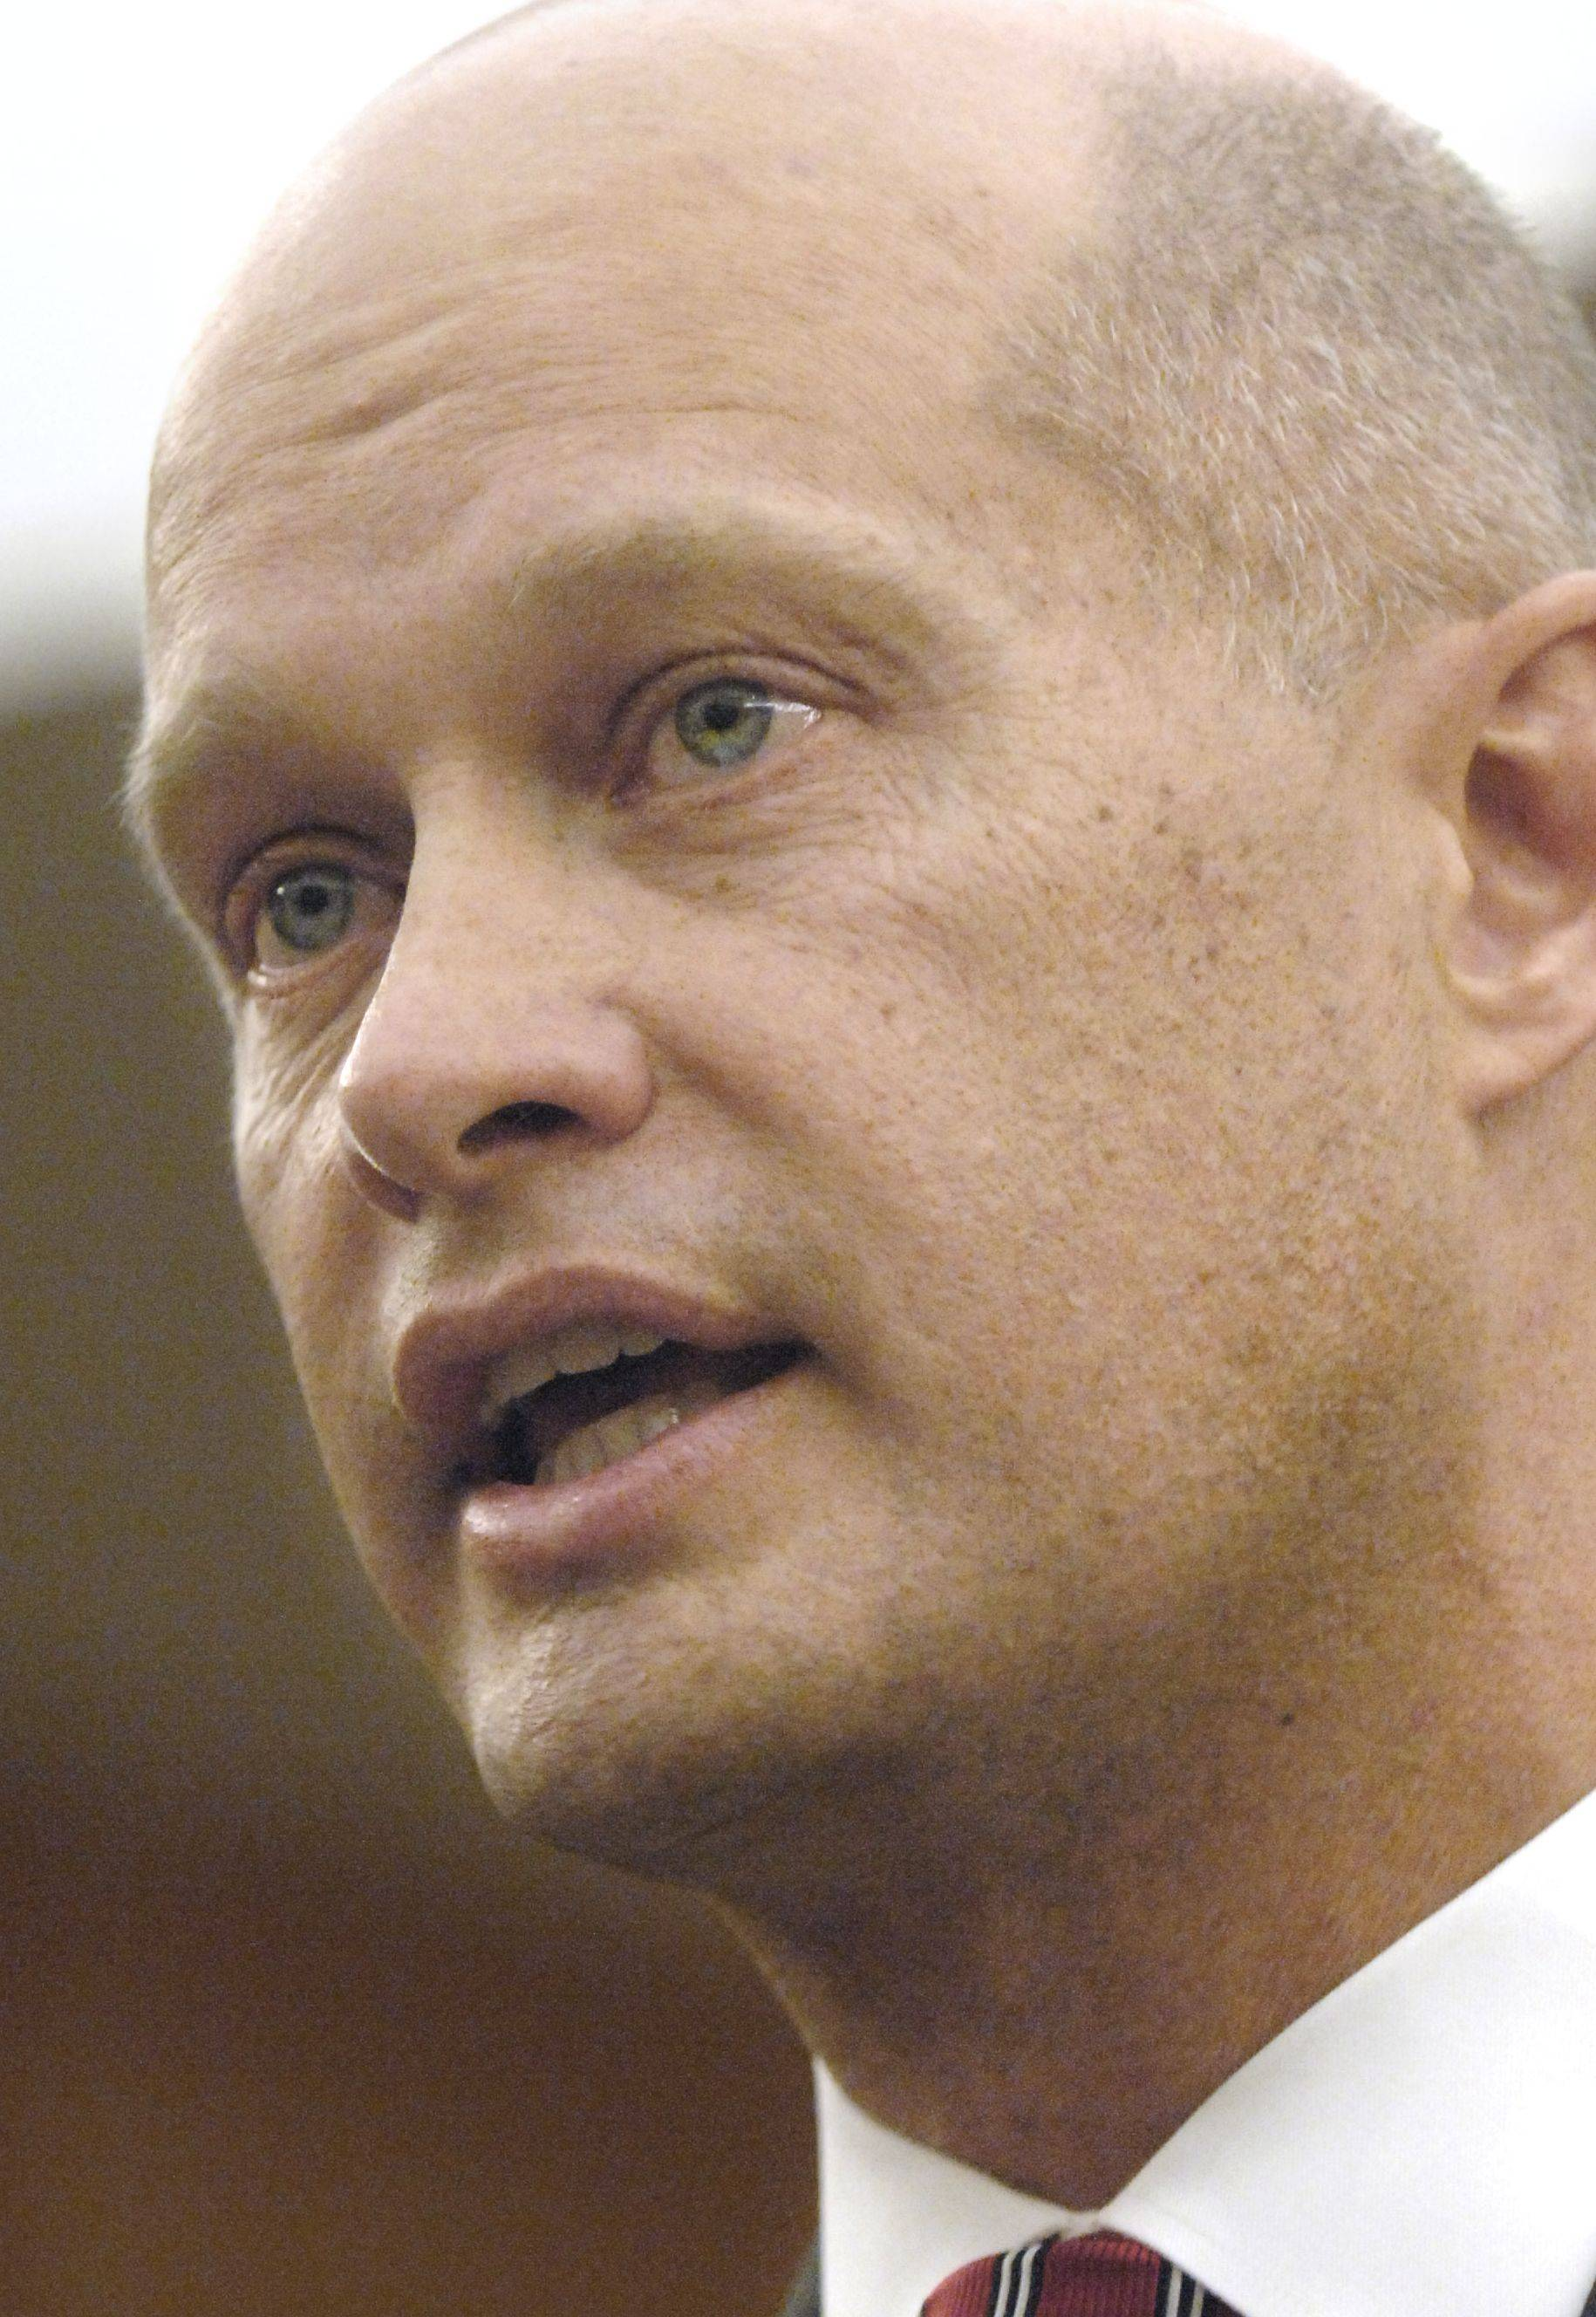 Fewer felony cases authorized in Kane in 2012